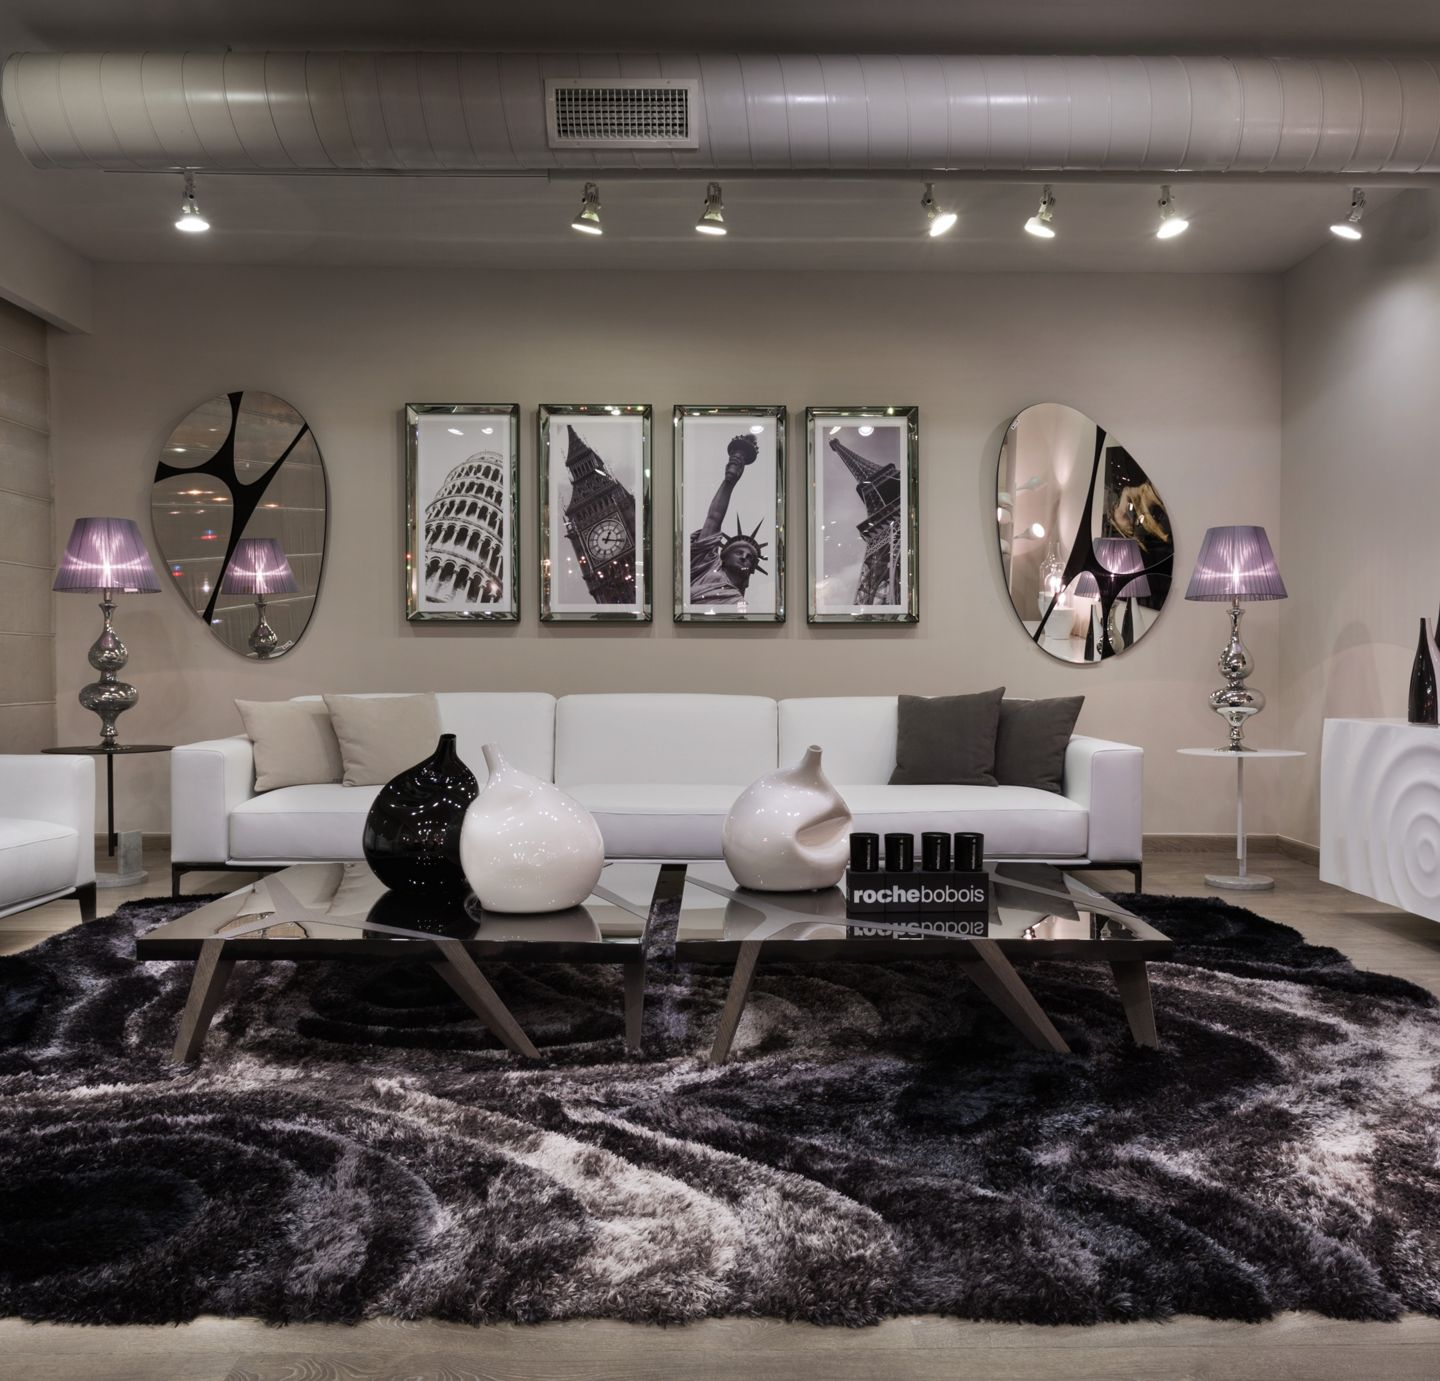 magasin roche bobois tel aviv herzliya zipcode. Black Bedroom Furniture Sets. Home Design Ideas